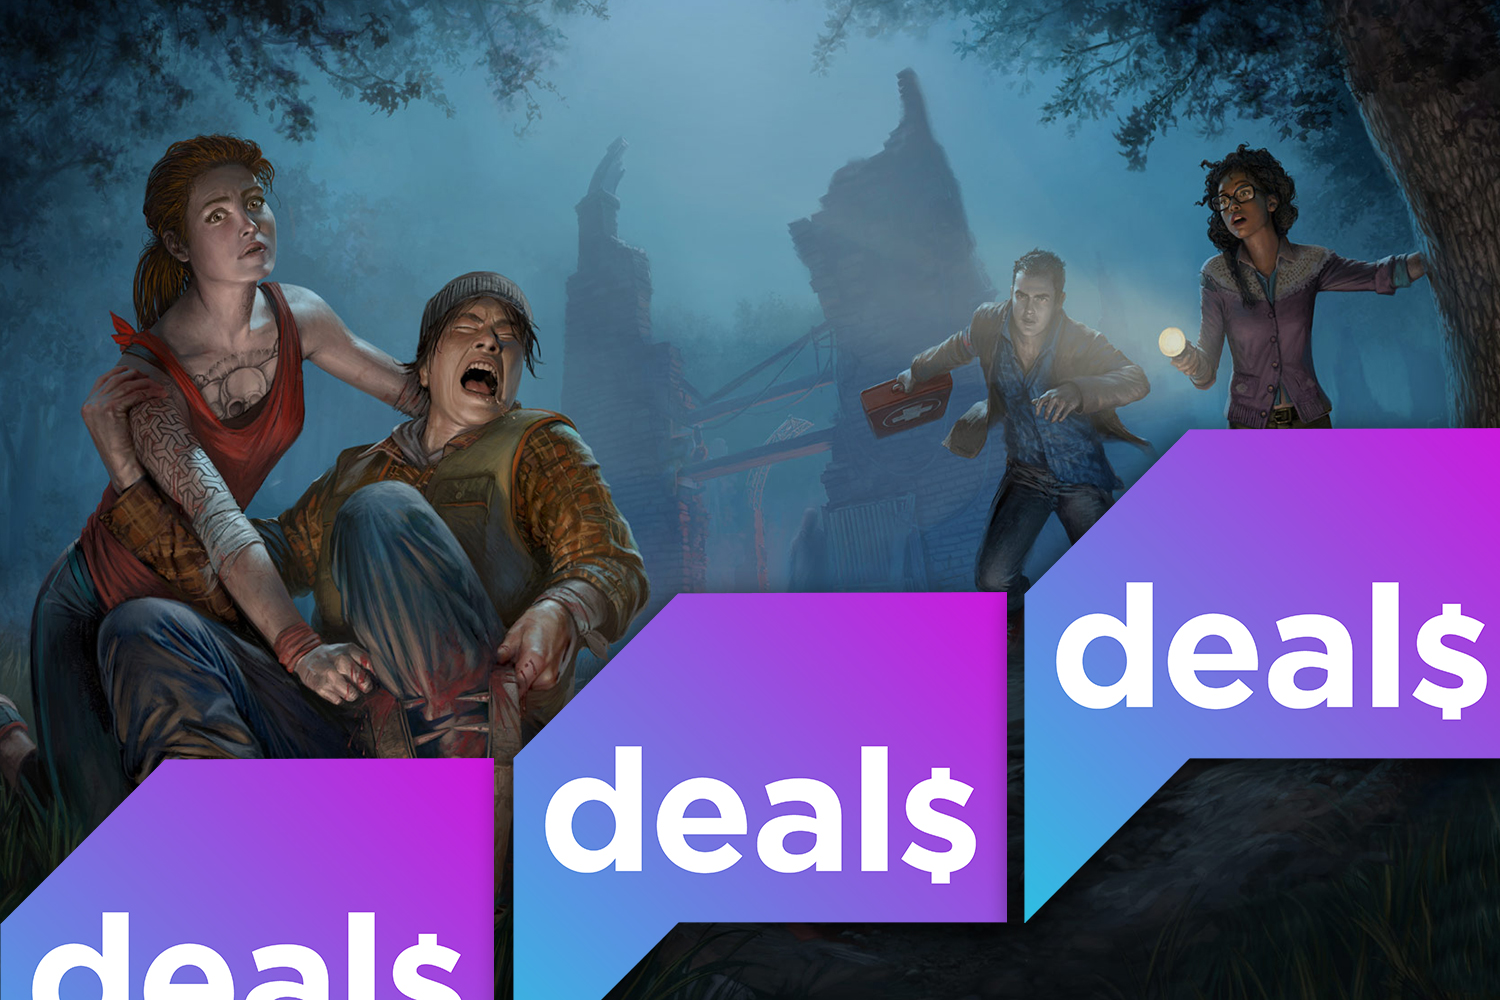 PS4 Pro Destiny 2 bundle, Newegg flash sale, and more of the best game deals